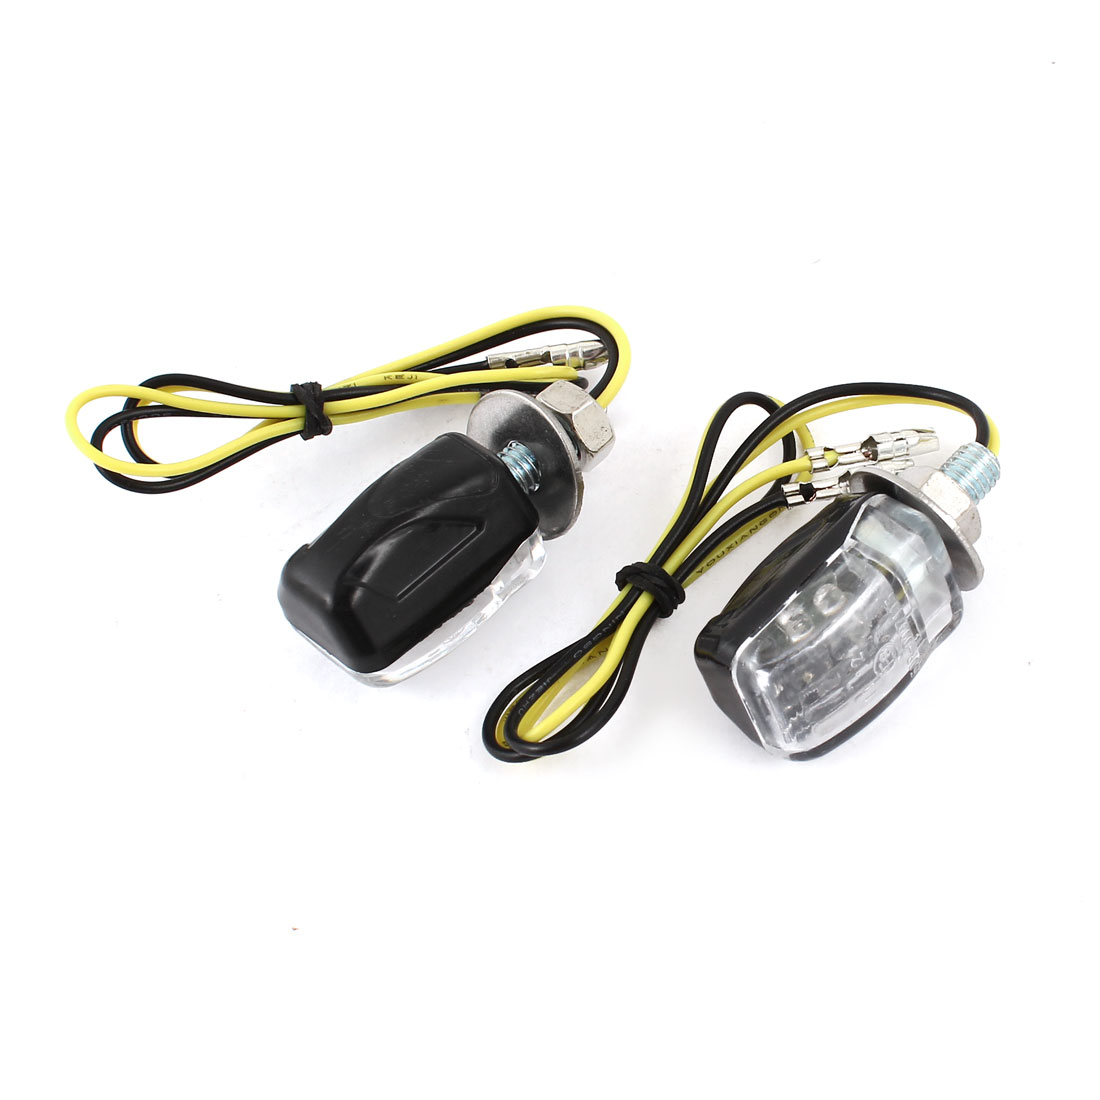 2 Pcs DC 12V Yellow 6 LED 6mm Bolt Dia Turn Light Indicator Lamps for Motorcycle